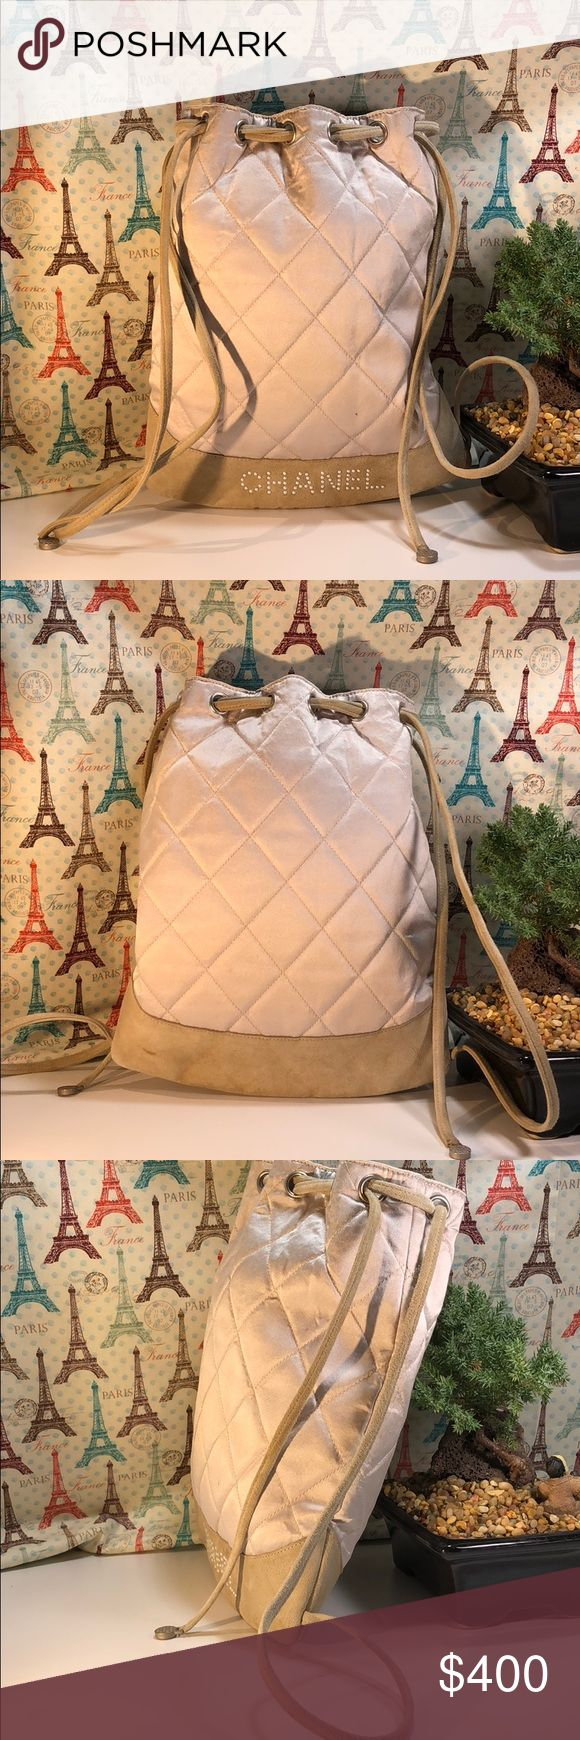 Authentic Chanel Canvas Suede Cross Body The canvas and strap showed signs of used as the bag was preowned. The bag made in Italy with serial 6857221. Inside there some little stains. The dimension 9.5 and 11.5. No trade please CHANEL Bags Crossbody Bags